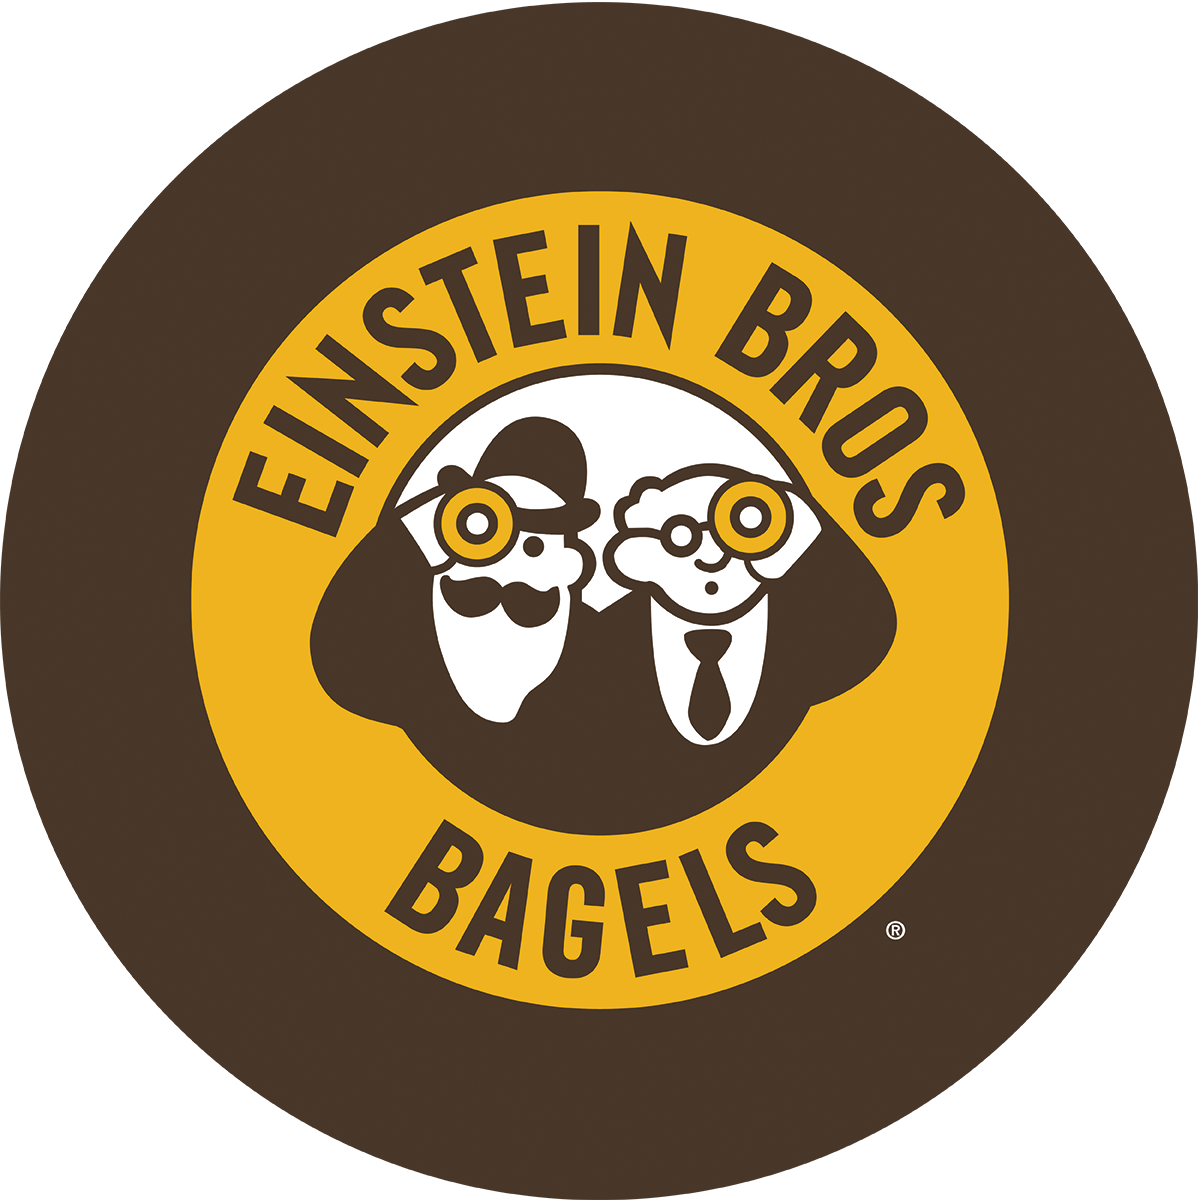 Einstein Bros. Bagels - Saint Petersburg, FL - Restaurants